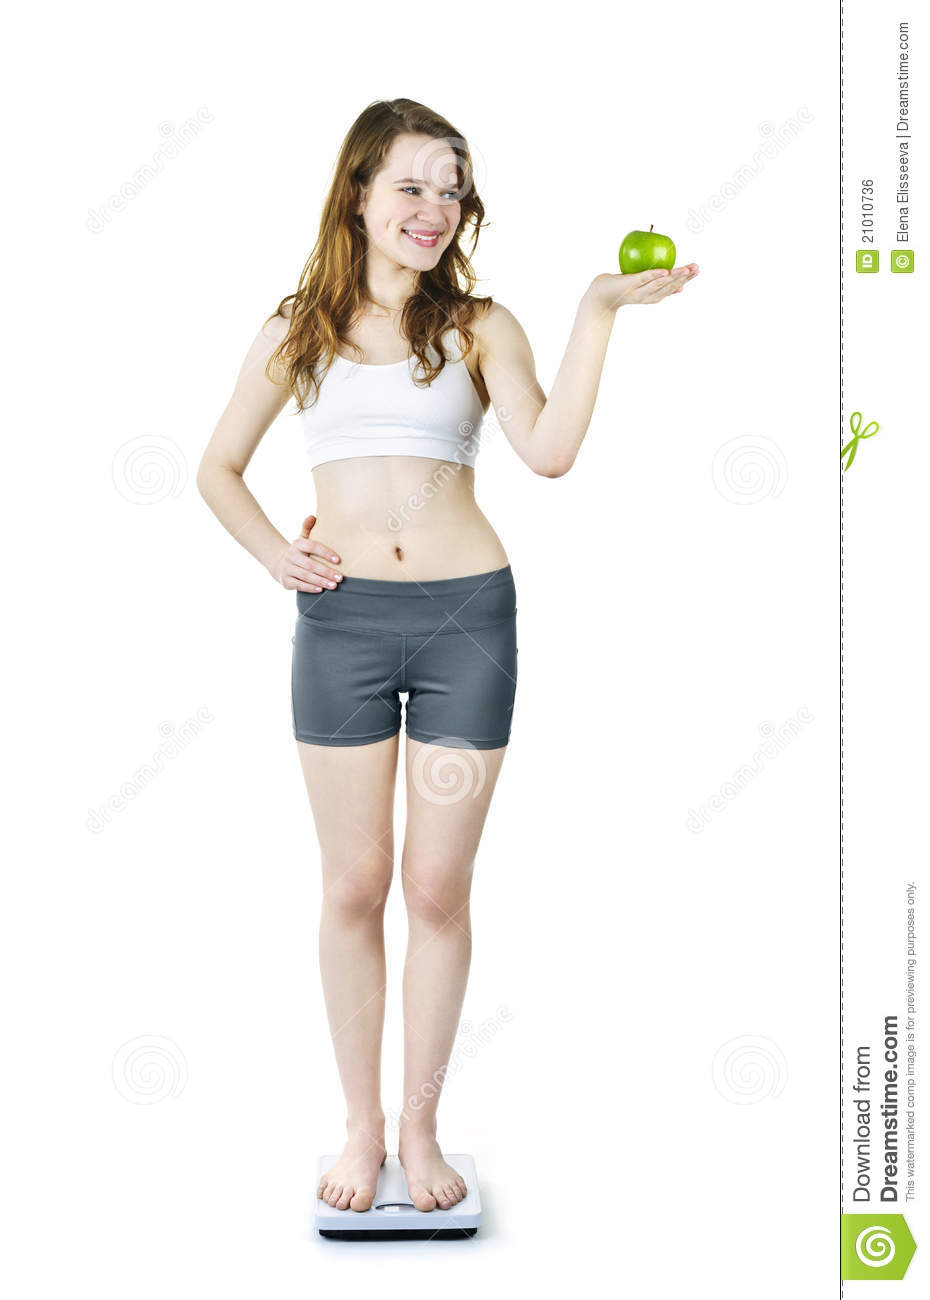 Young Smiling Girl On Bathroom Scale Holding Apple Royalty